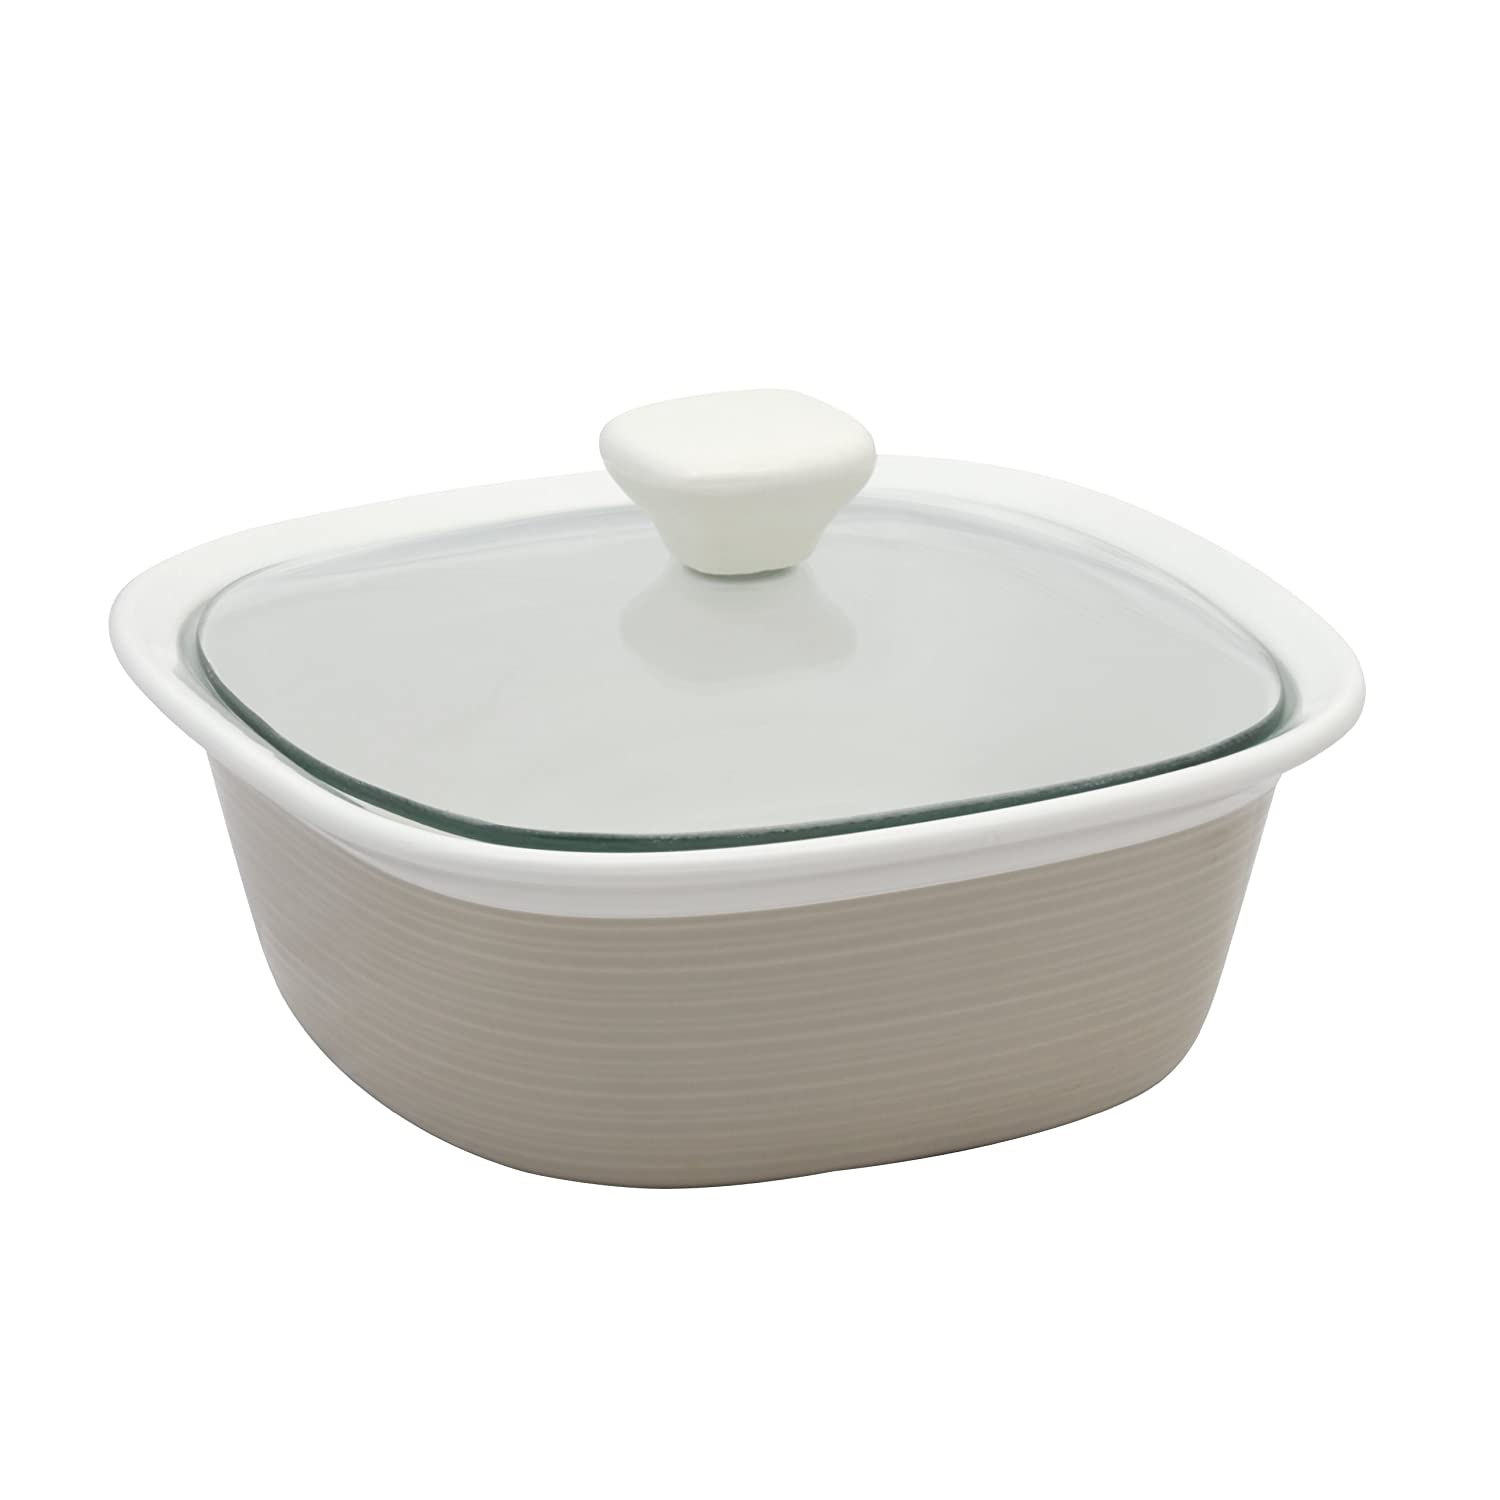 CorningWare Etch 1.5 Quart with Glass Cover in Brick World Kitchen (PA) 1093848